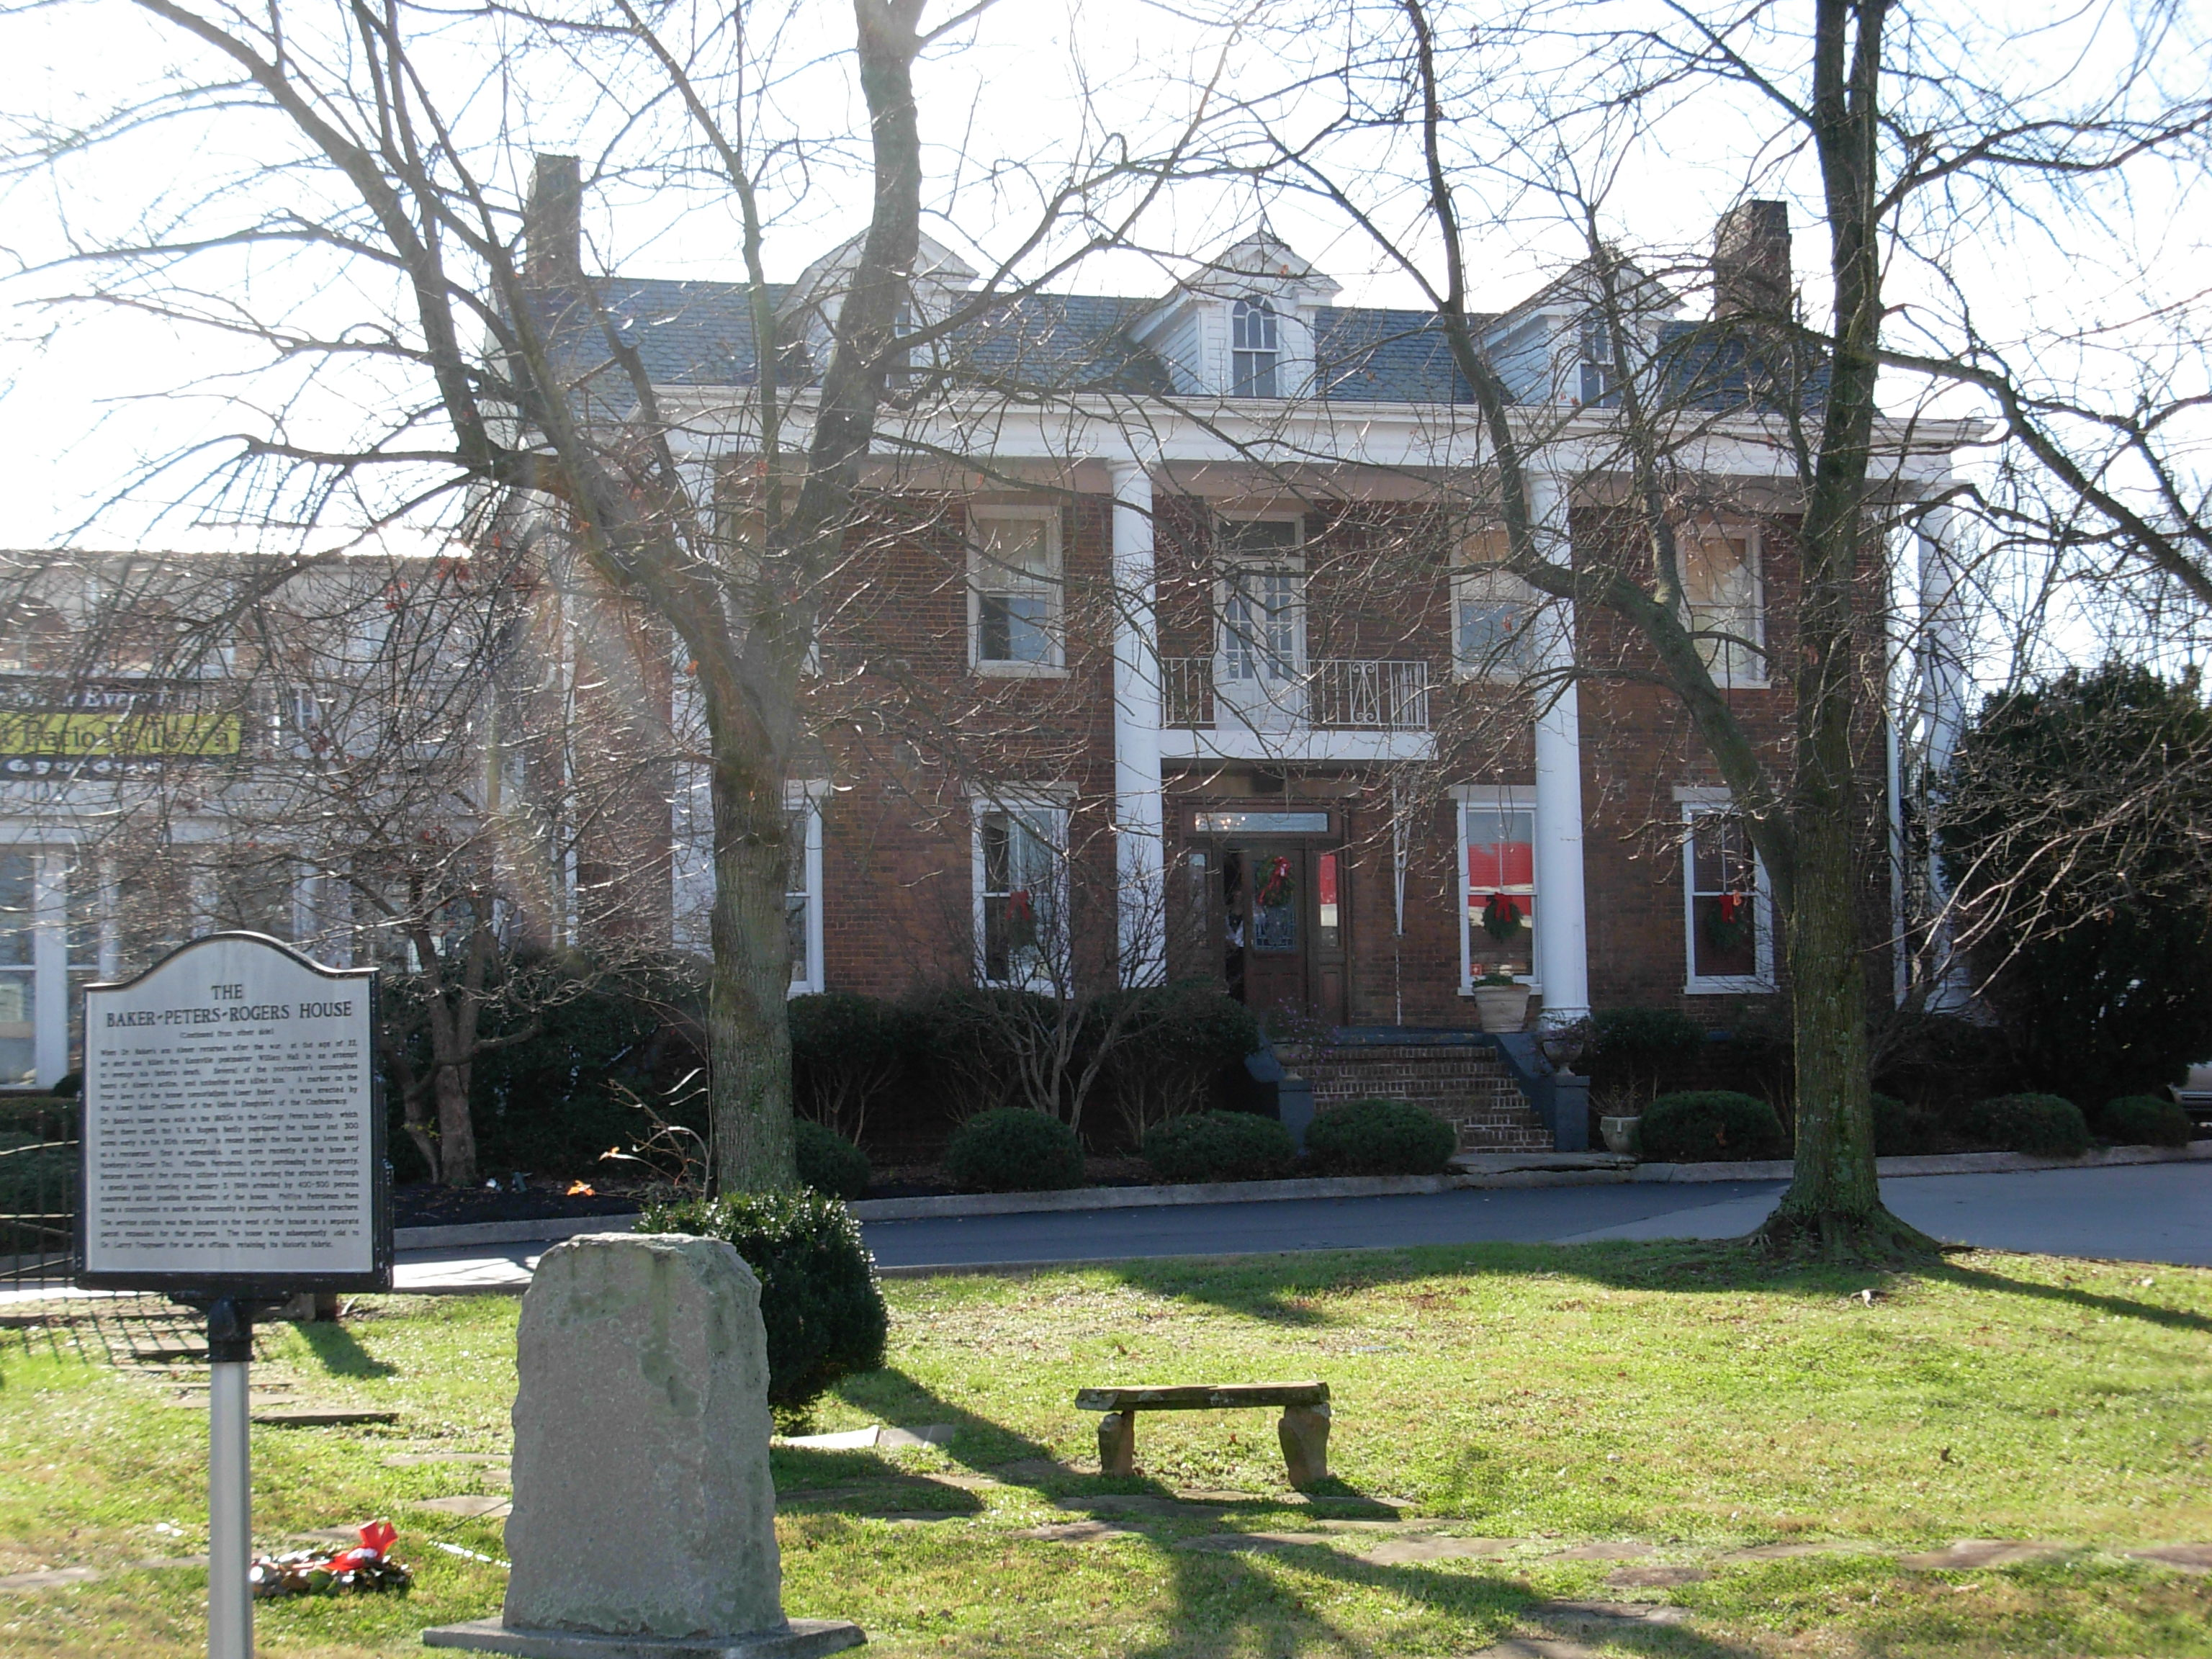 Baker-Peters House Knoxville Tennessee haunted jazz club Civil War ghosts